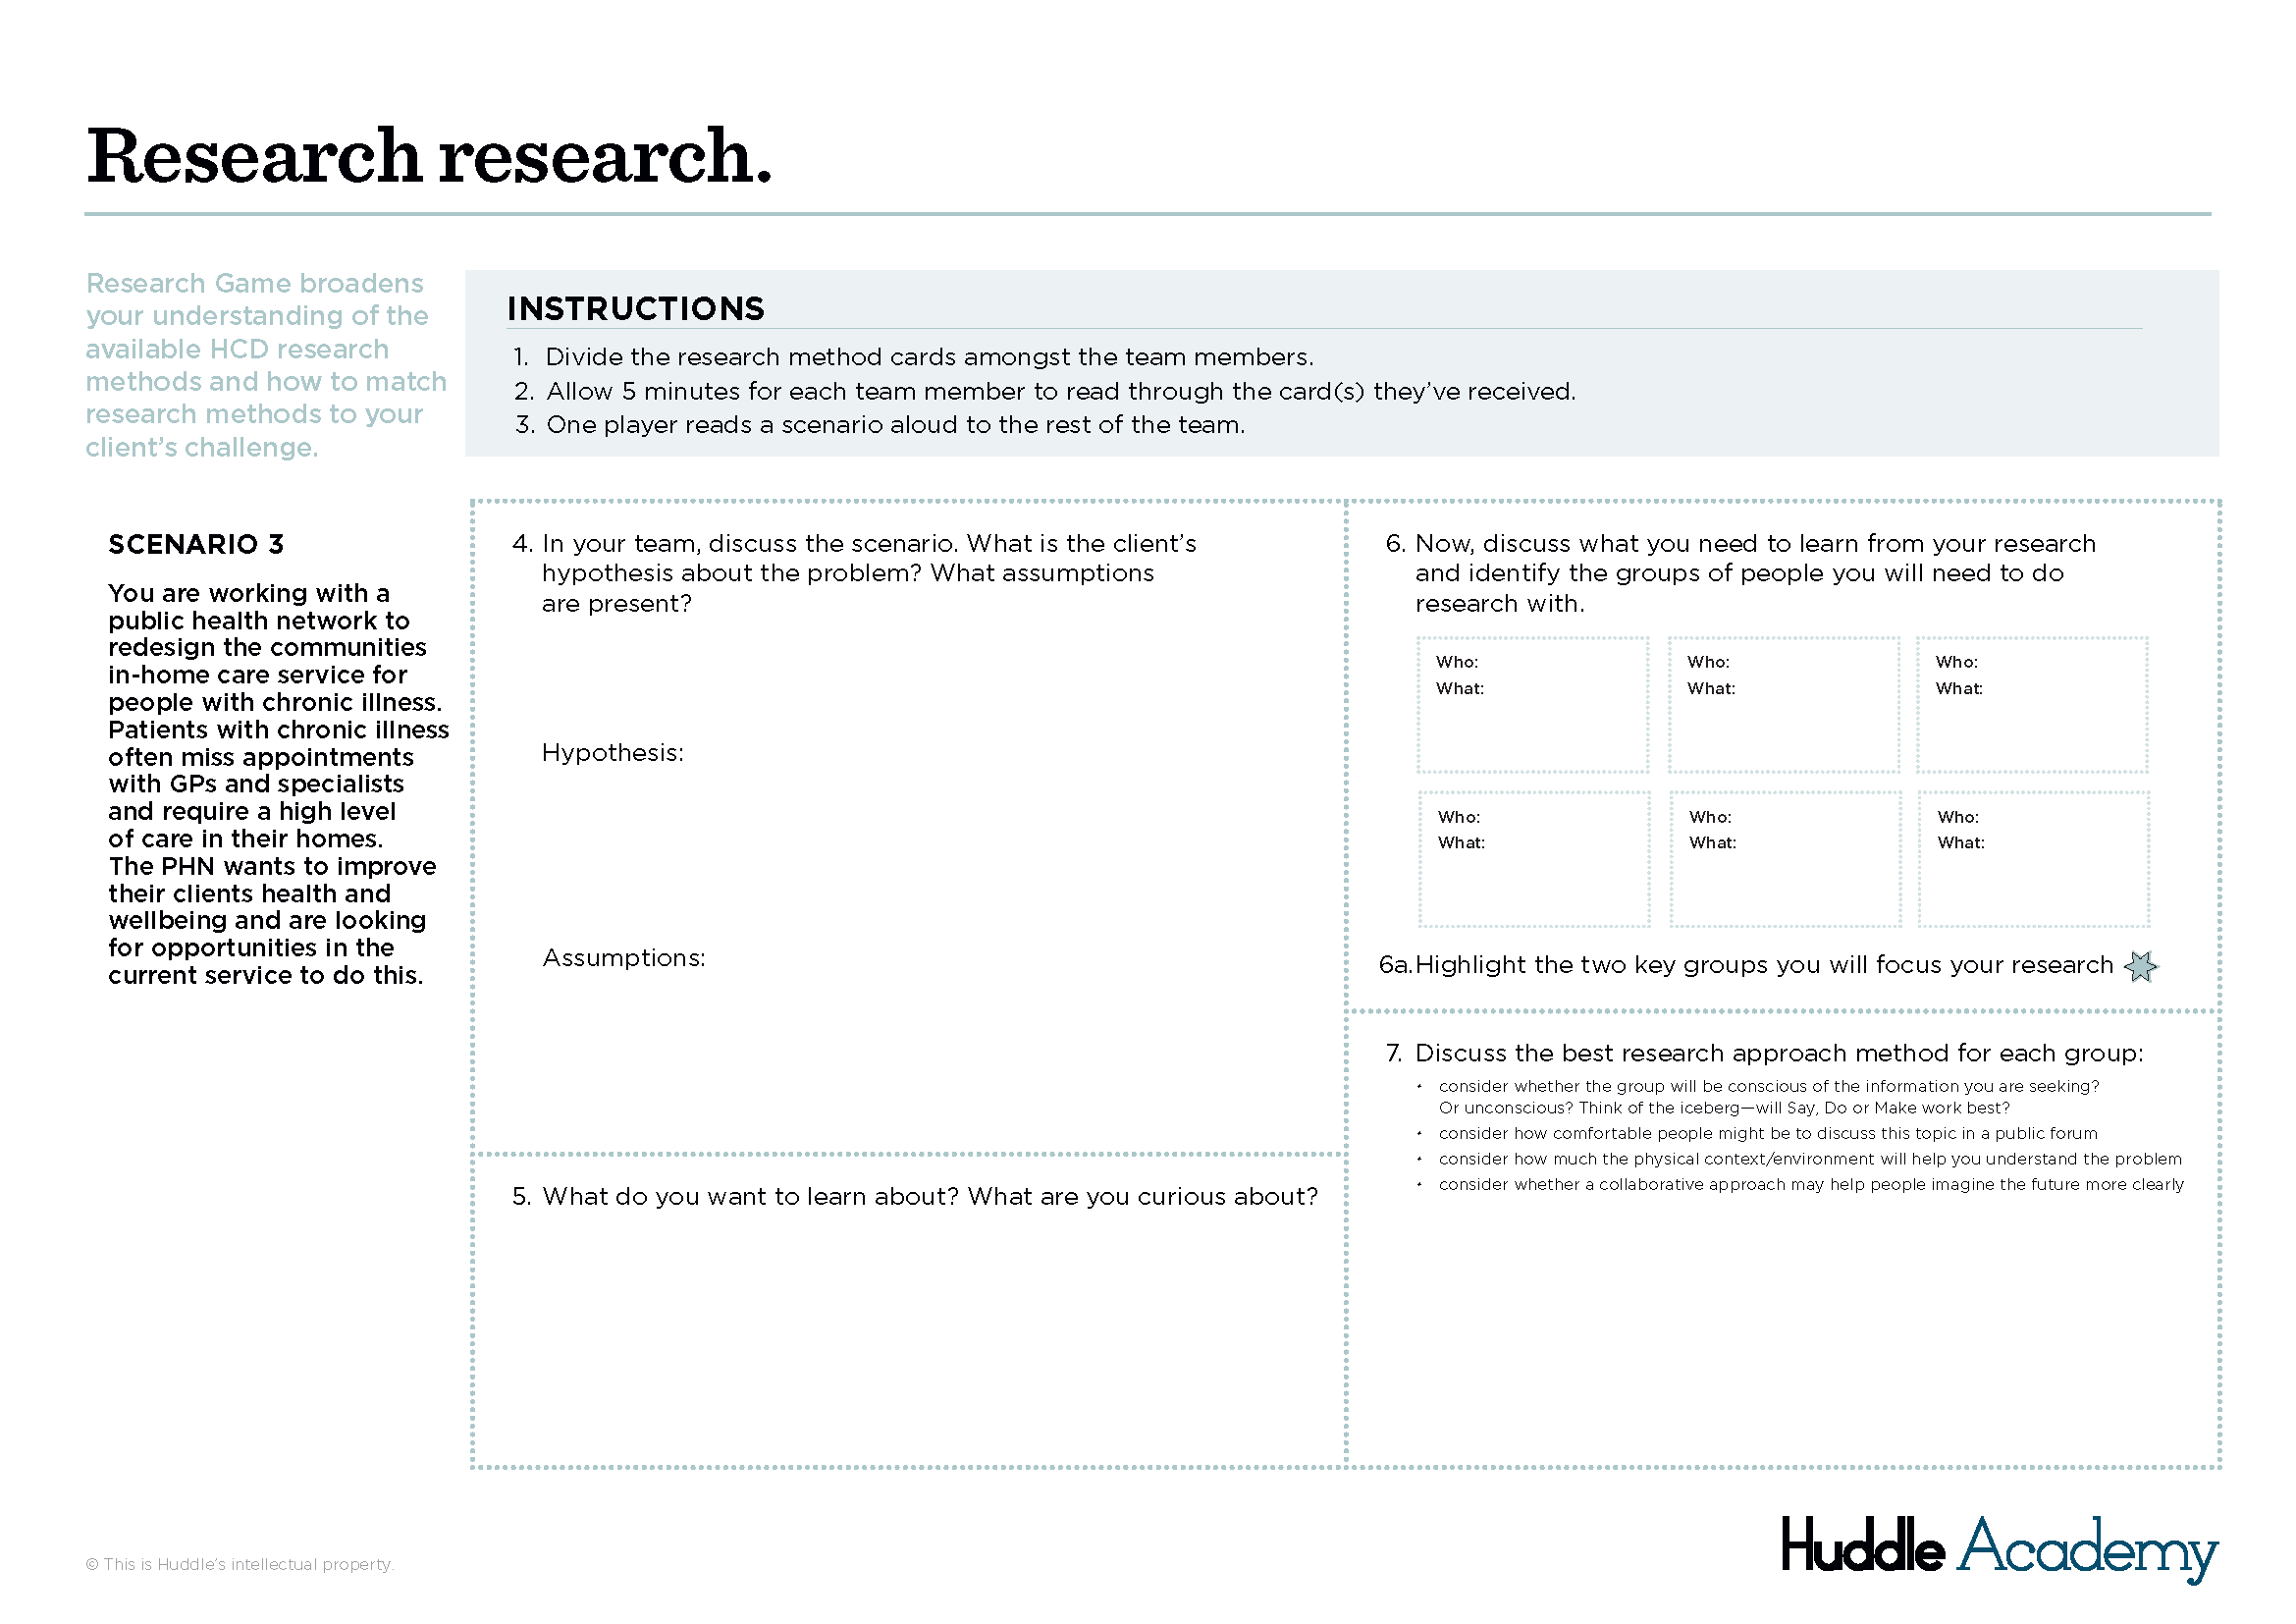 Research Research Game